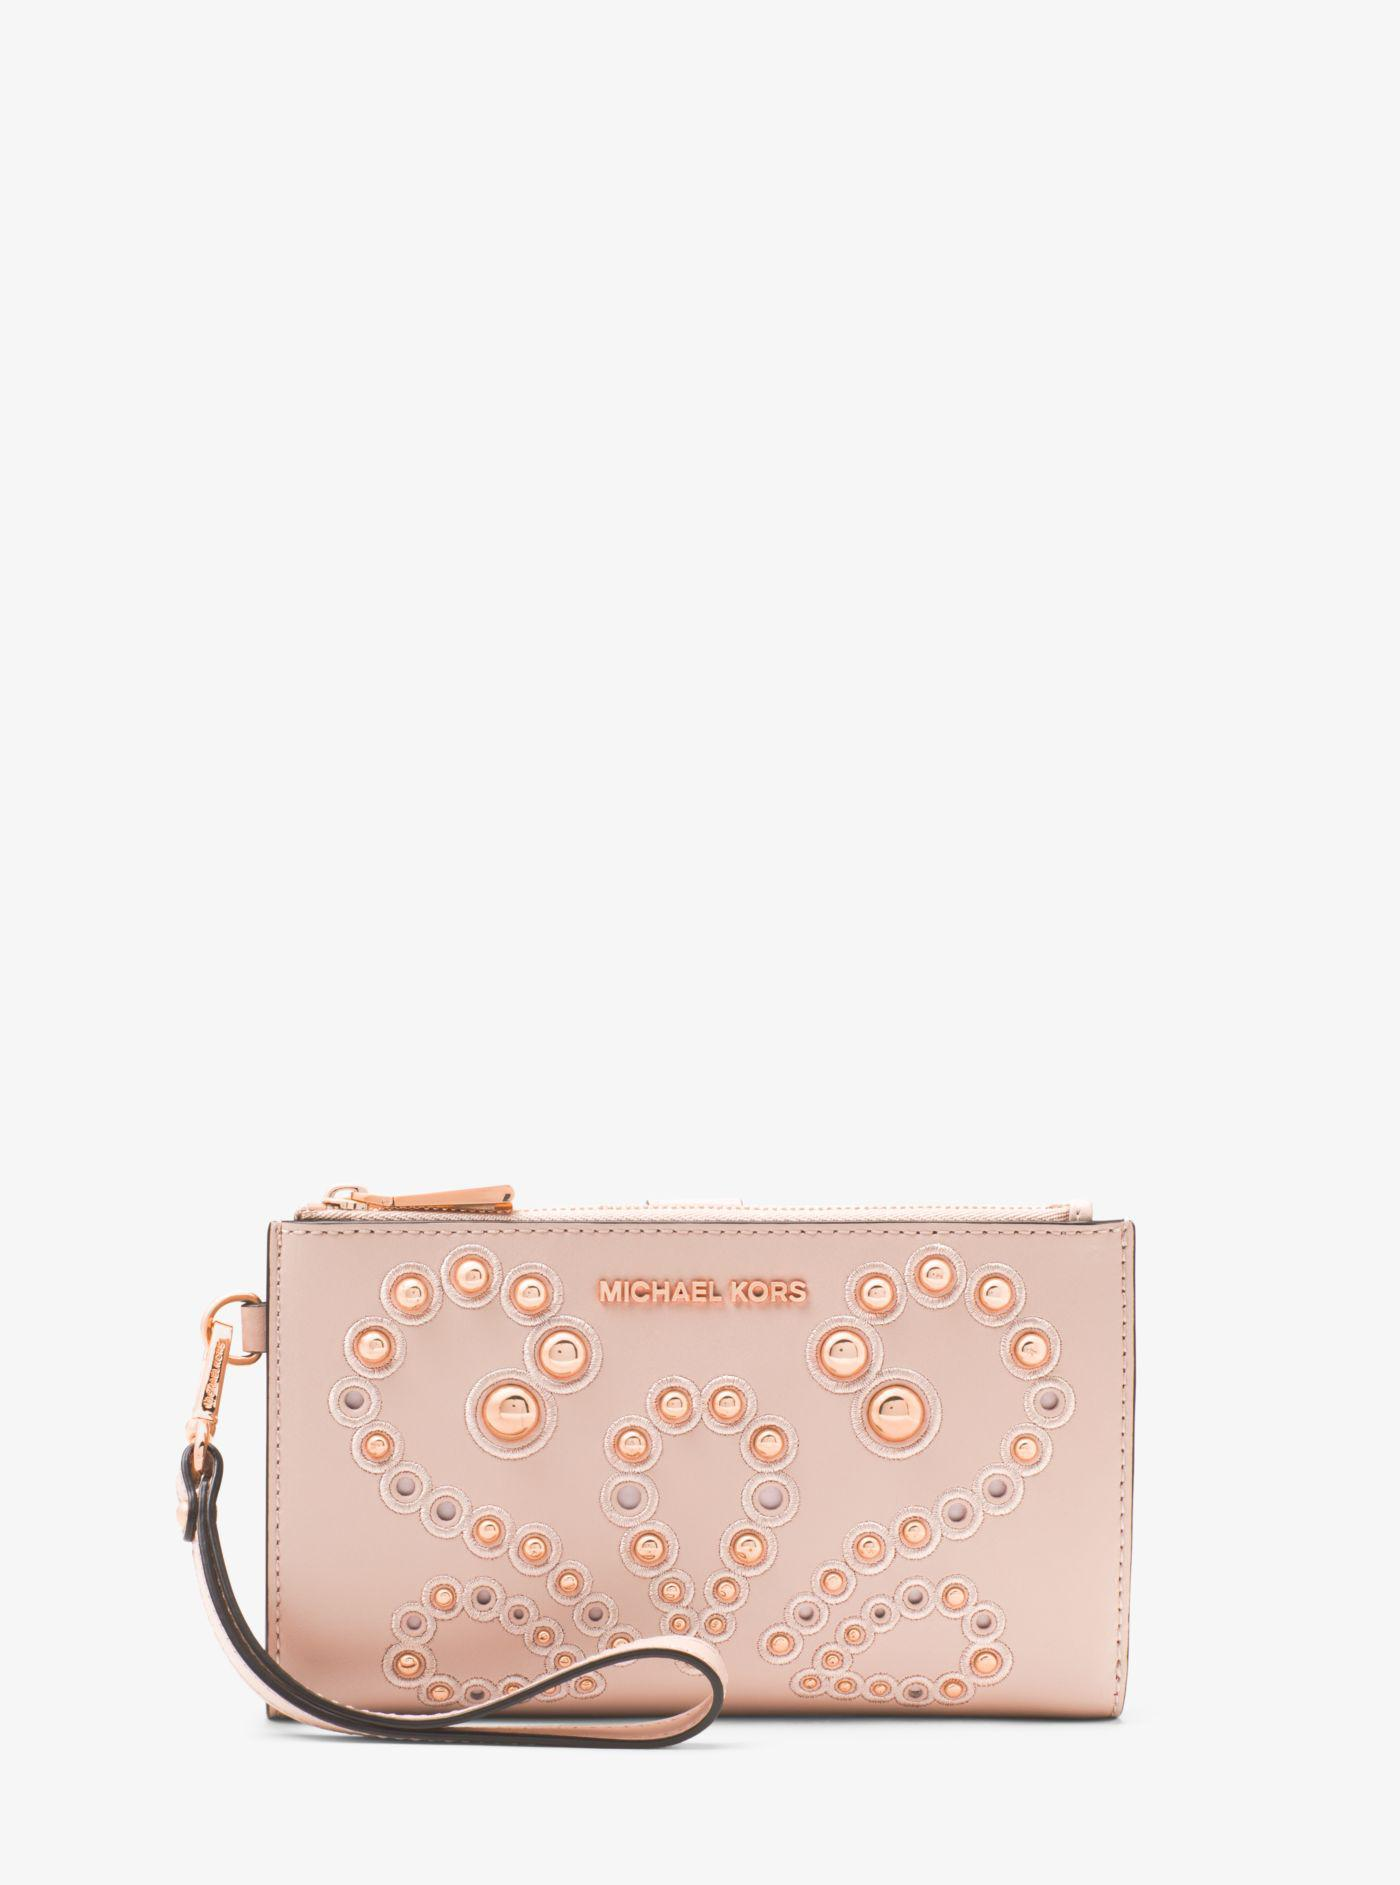 ed2bb43cb41ab5 Michael Kors Adele Embellished Leather Smartphone Wallet in Pink - Lyst